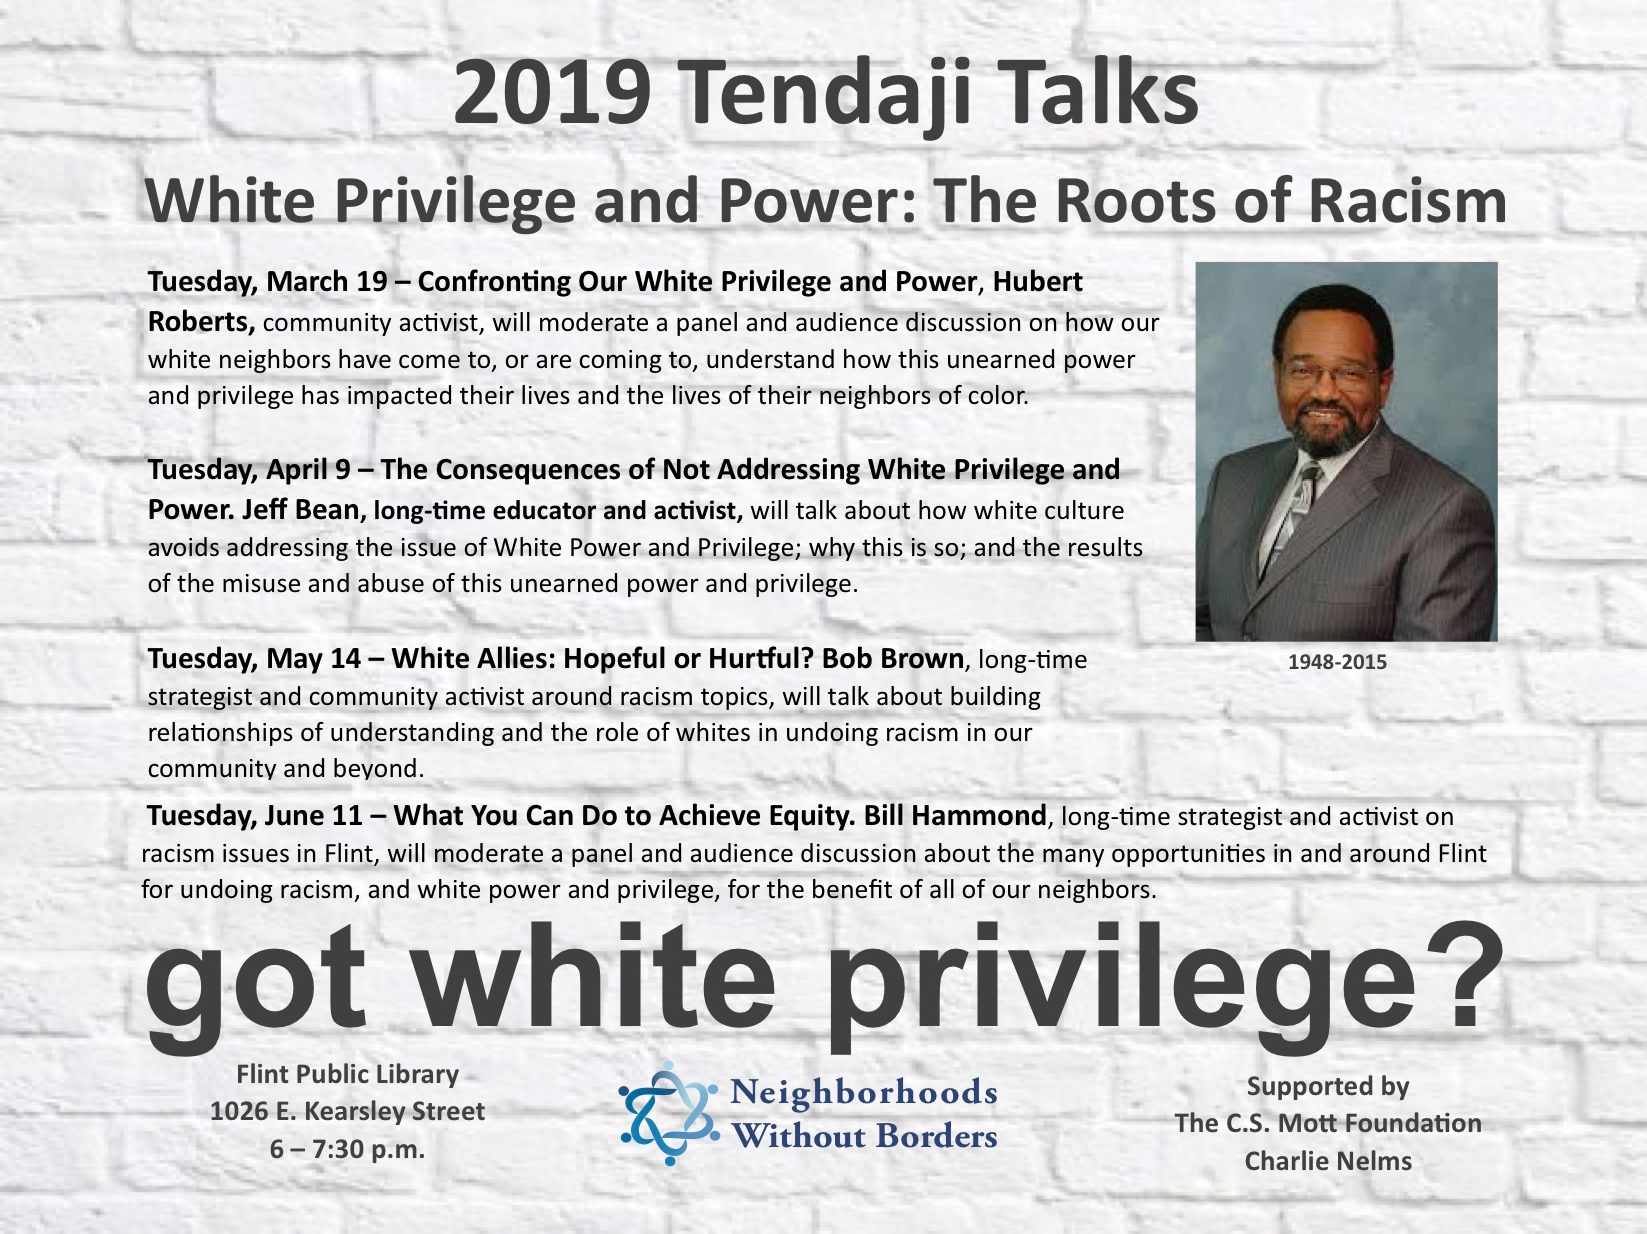 White Allies: Hopeful or Hurtful - Tendaji Talks @ Flint Public Library | Flint | Michigan | United States